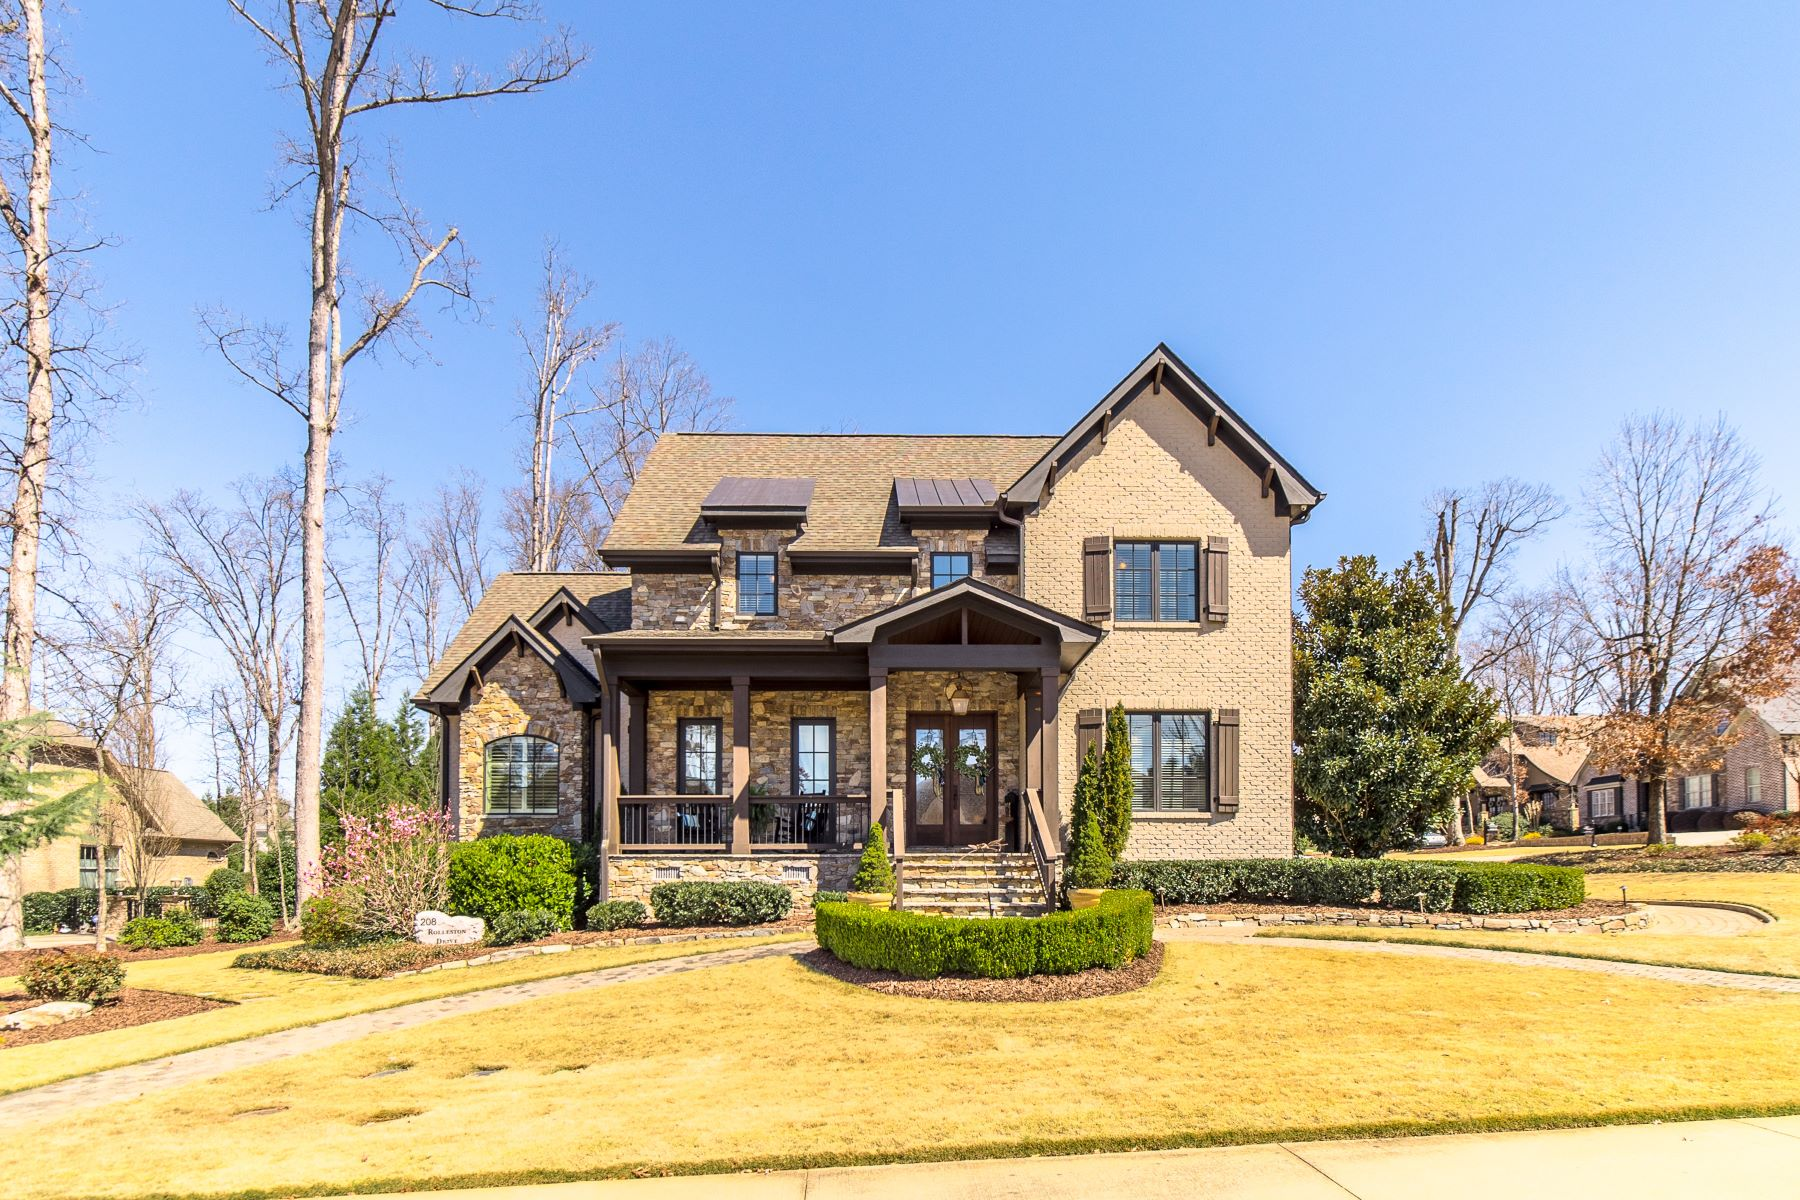 Single Family Homes for Sale at Custom Built Claremont Home 208 Rolleston Drive Greenville, South Carolina 29615 United States